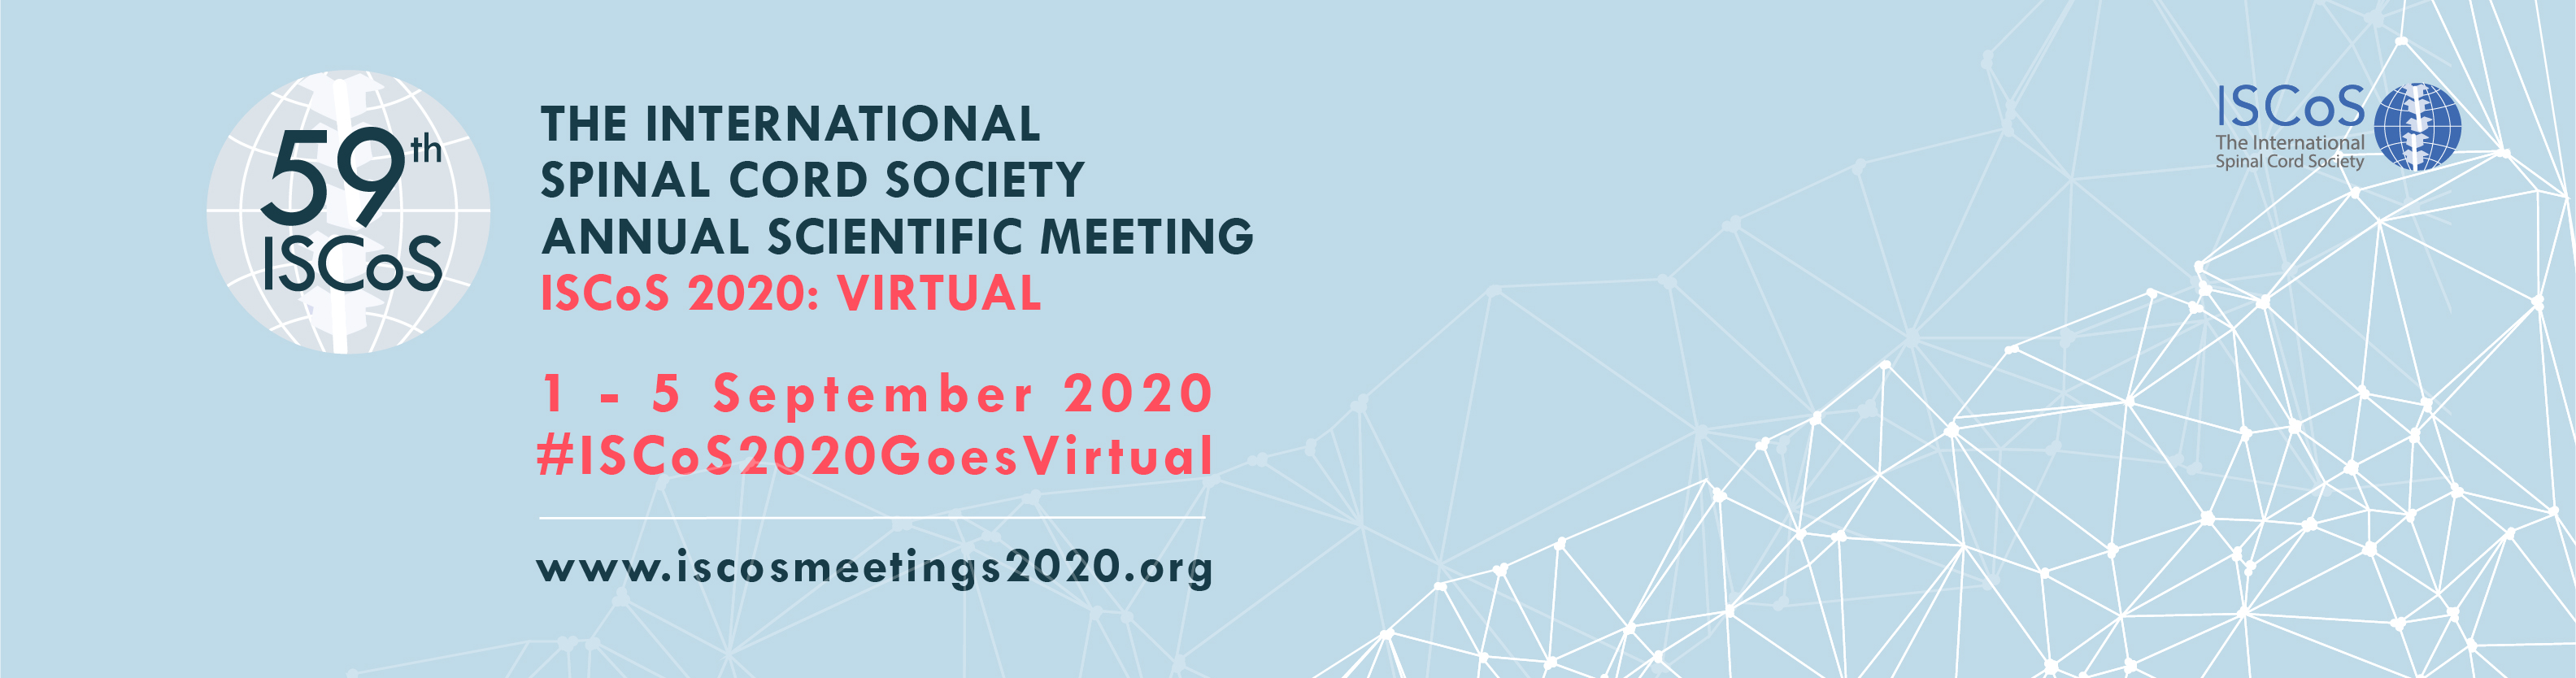 ISCoS2020 VIRTUAL Banners 760x200px LR